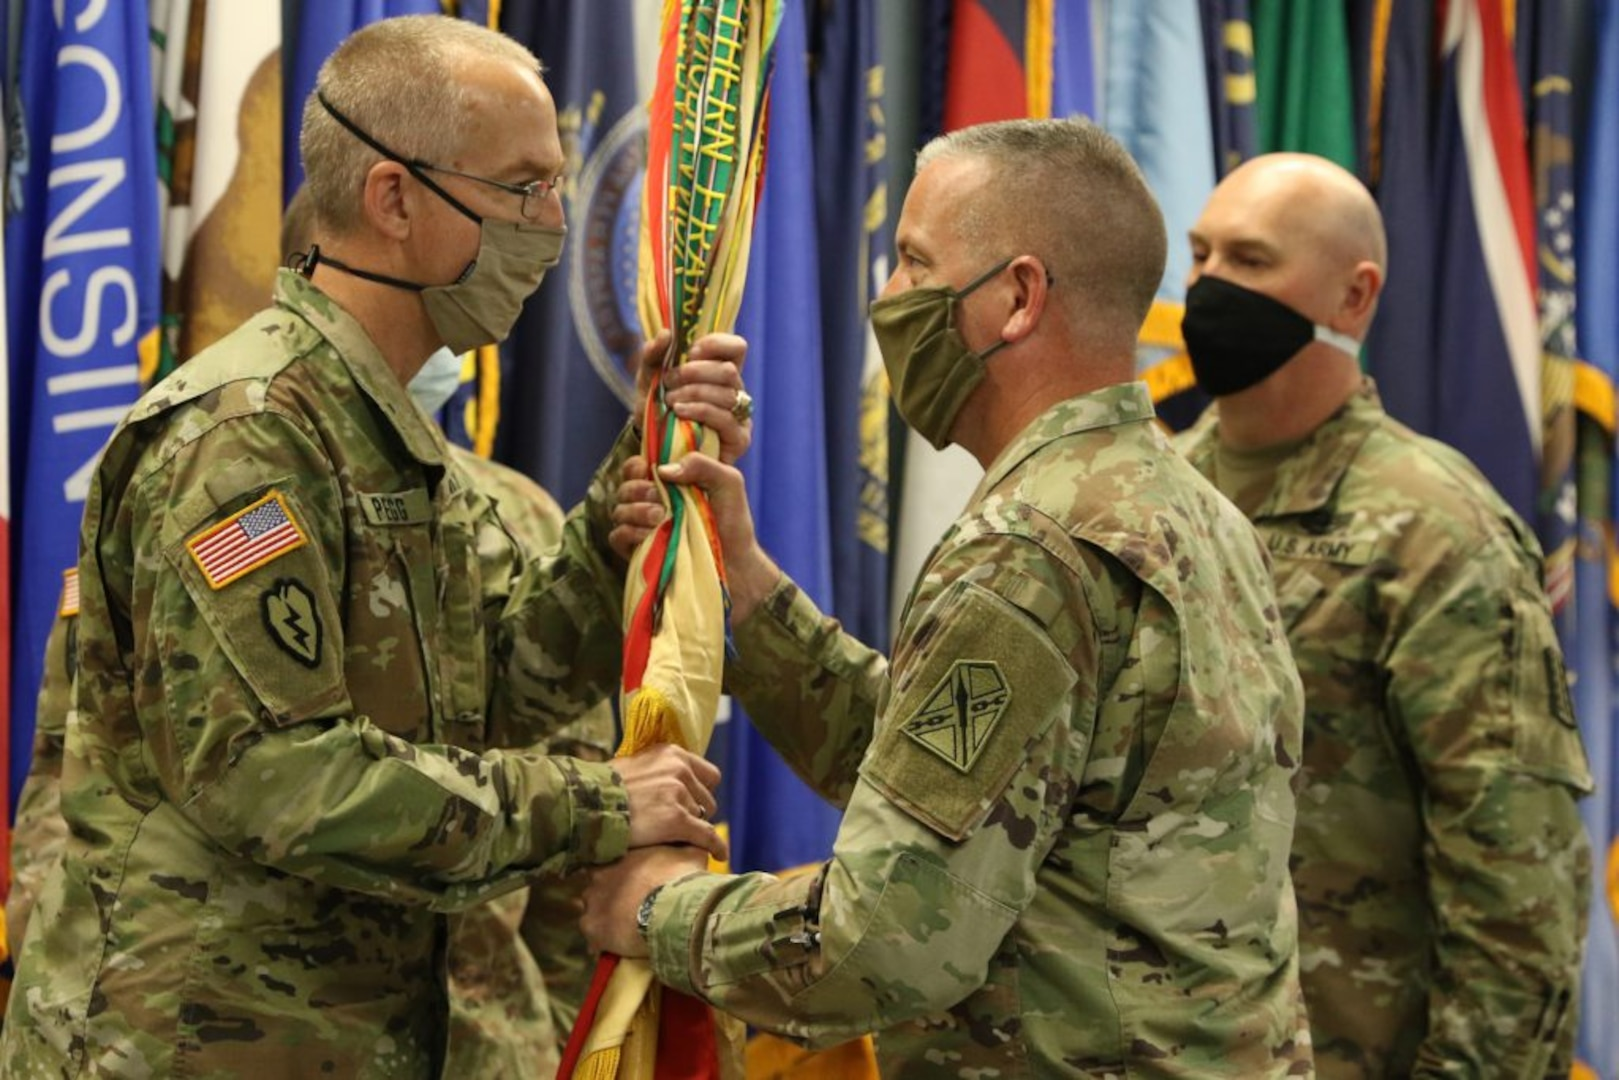 Pegg takes command of 329th RSG